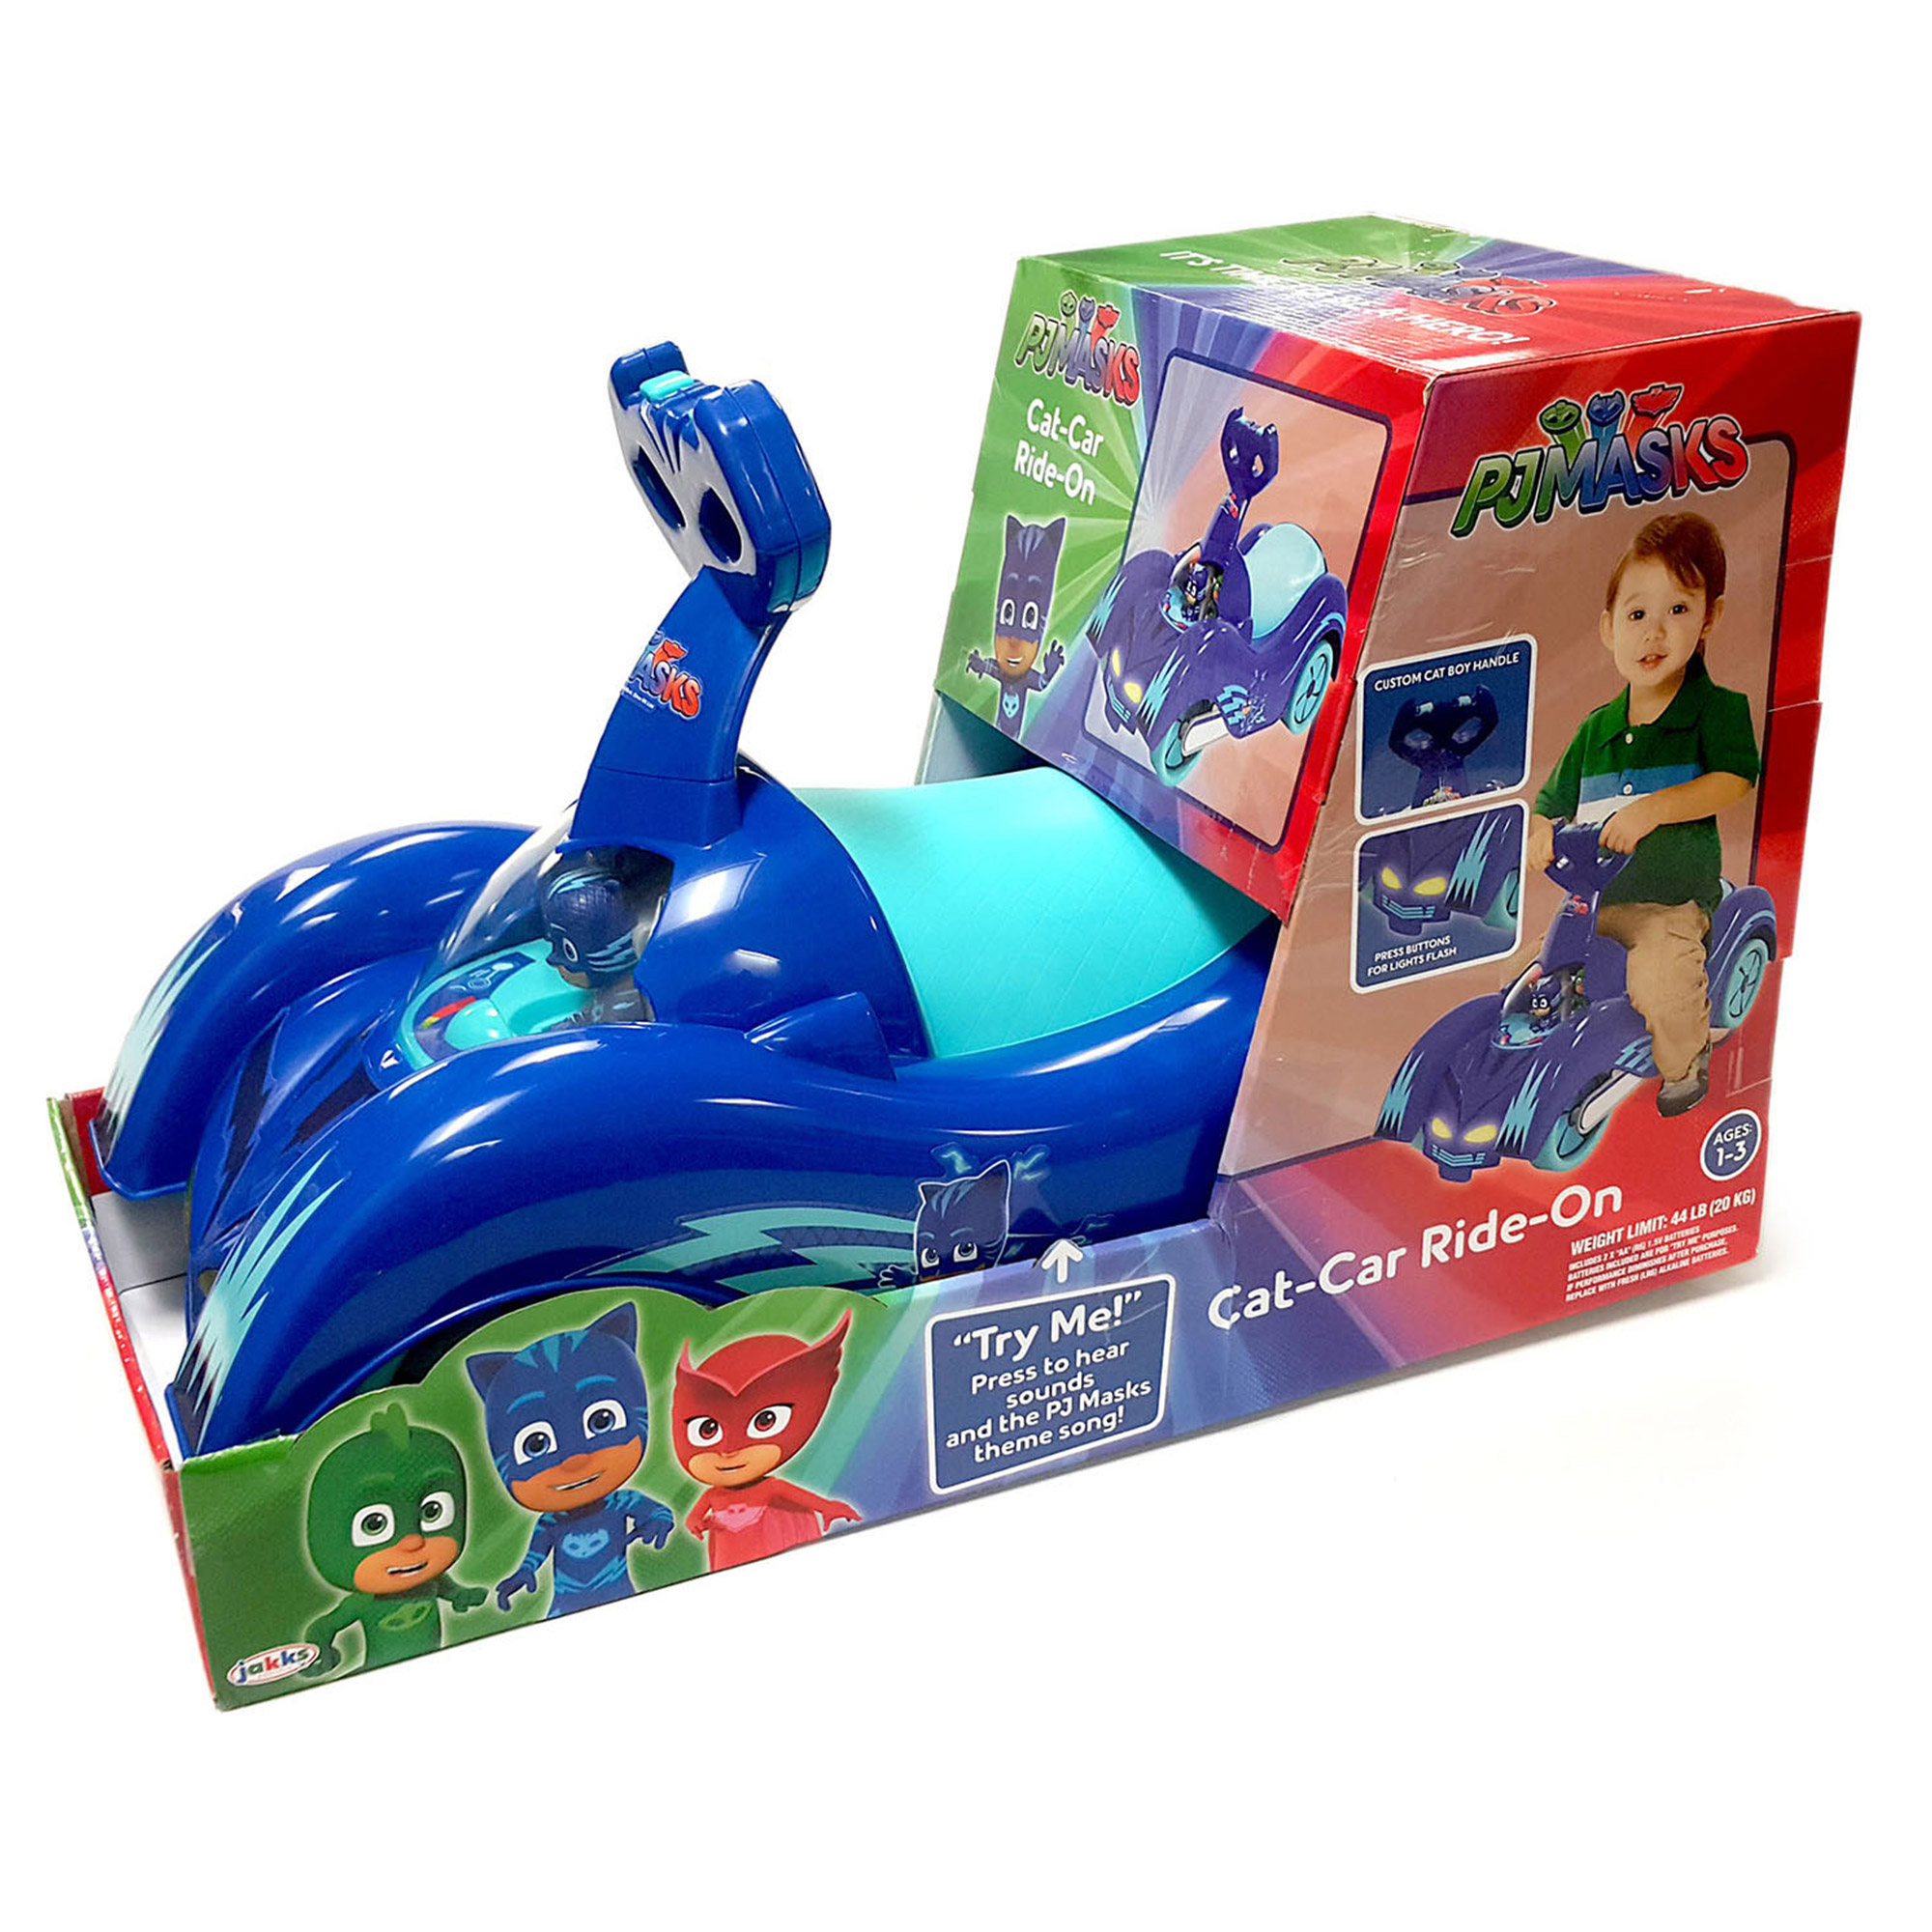 PJ Masks Cat-Car Ride On